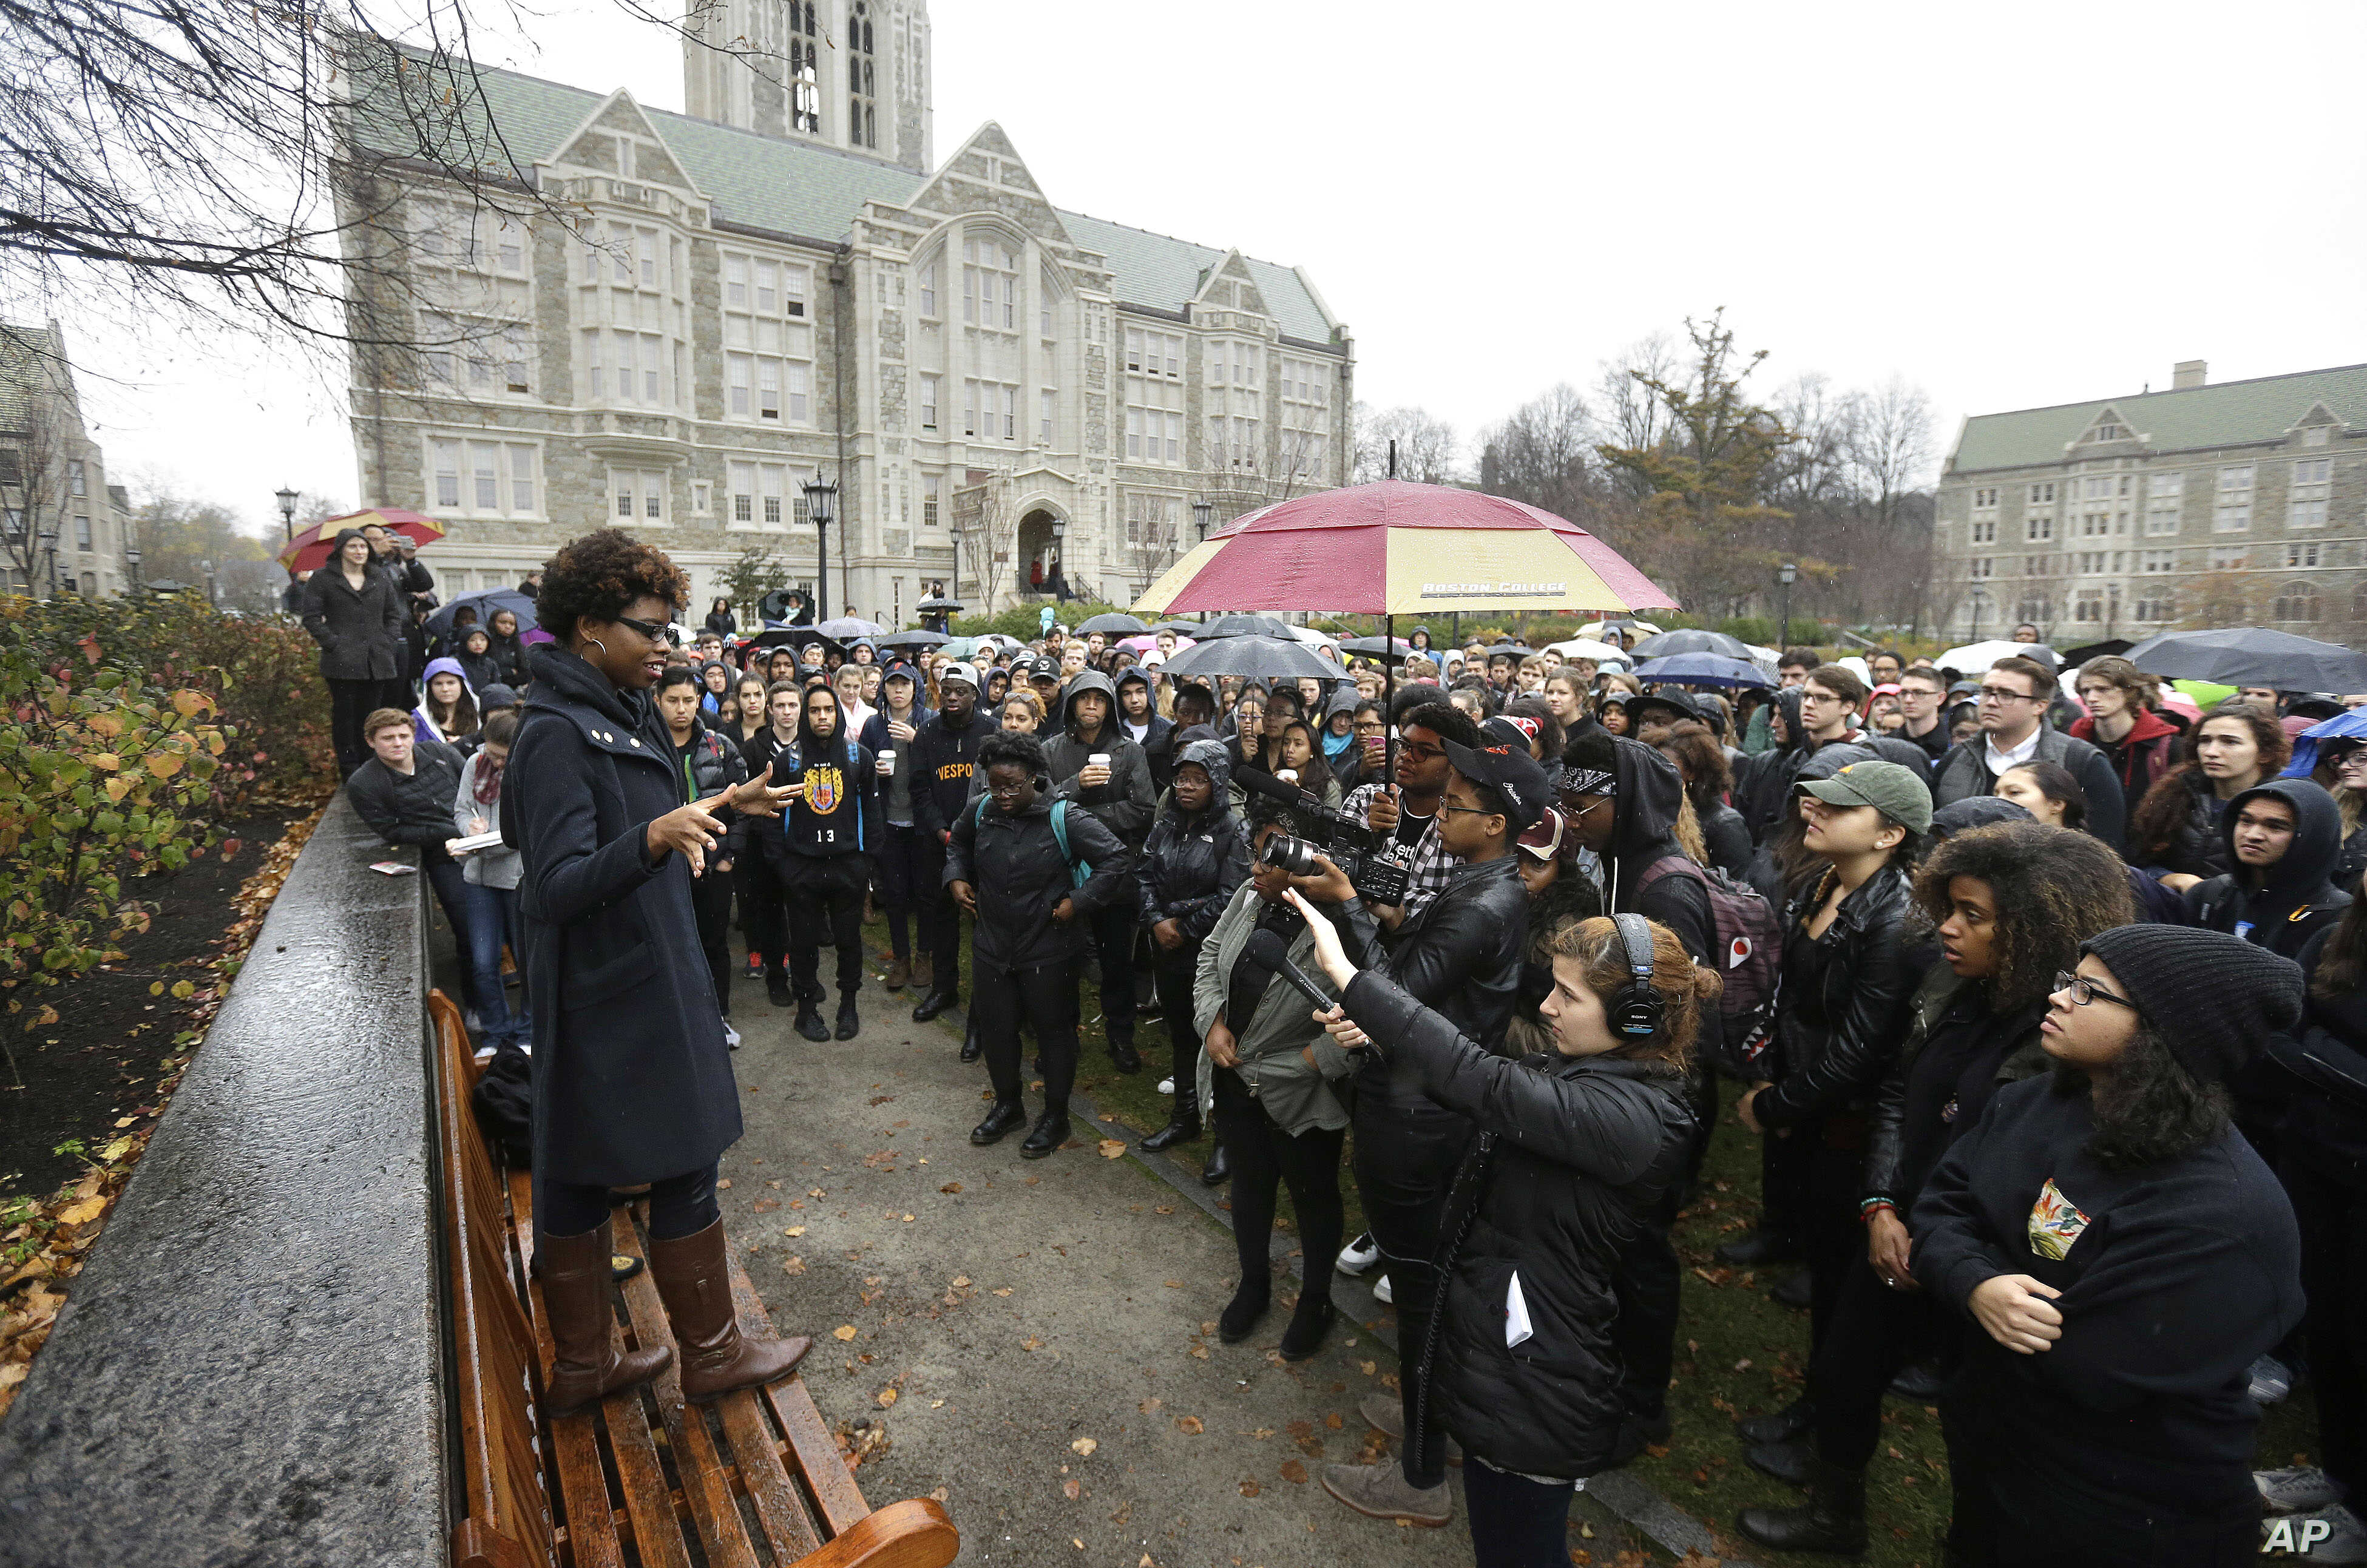 Students at Boston College listen to a speaker as they gather during a solidarity demonstration on the school's campus, in Newton, Mass., Nov. 12, 2015.